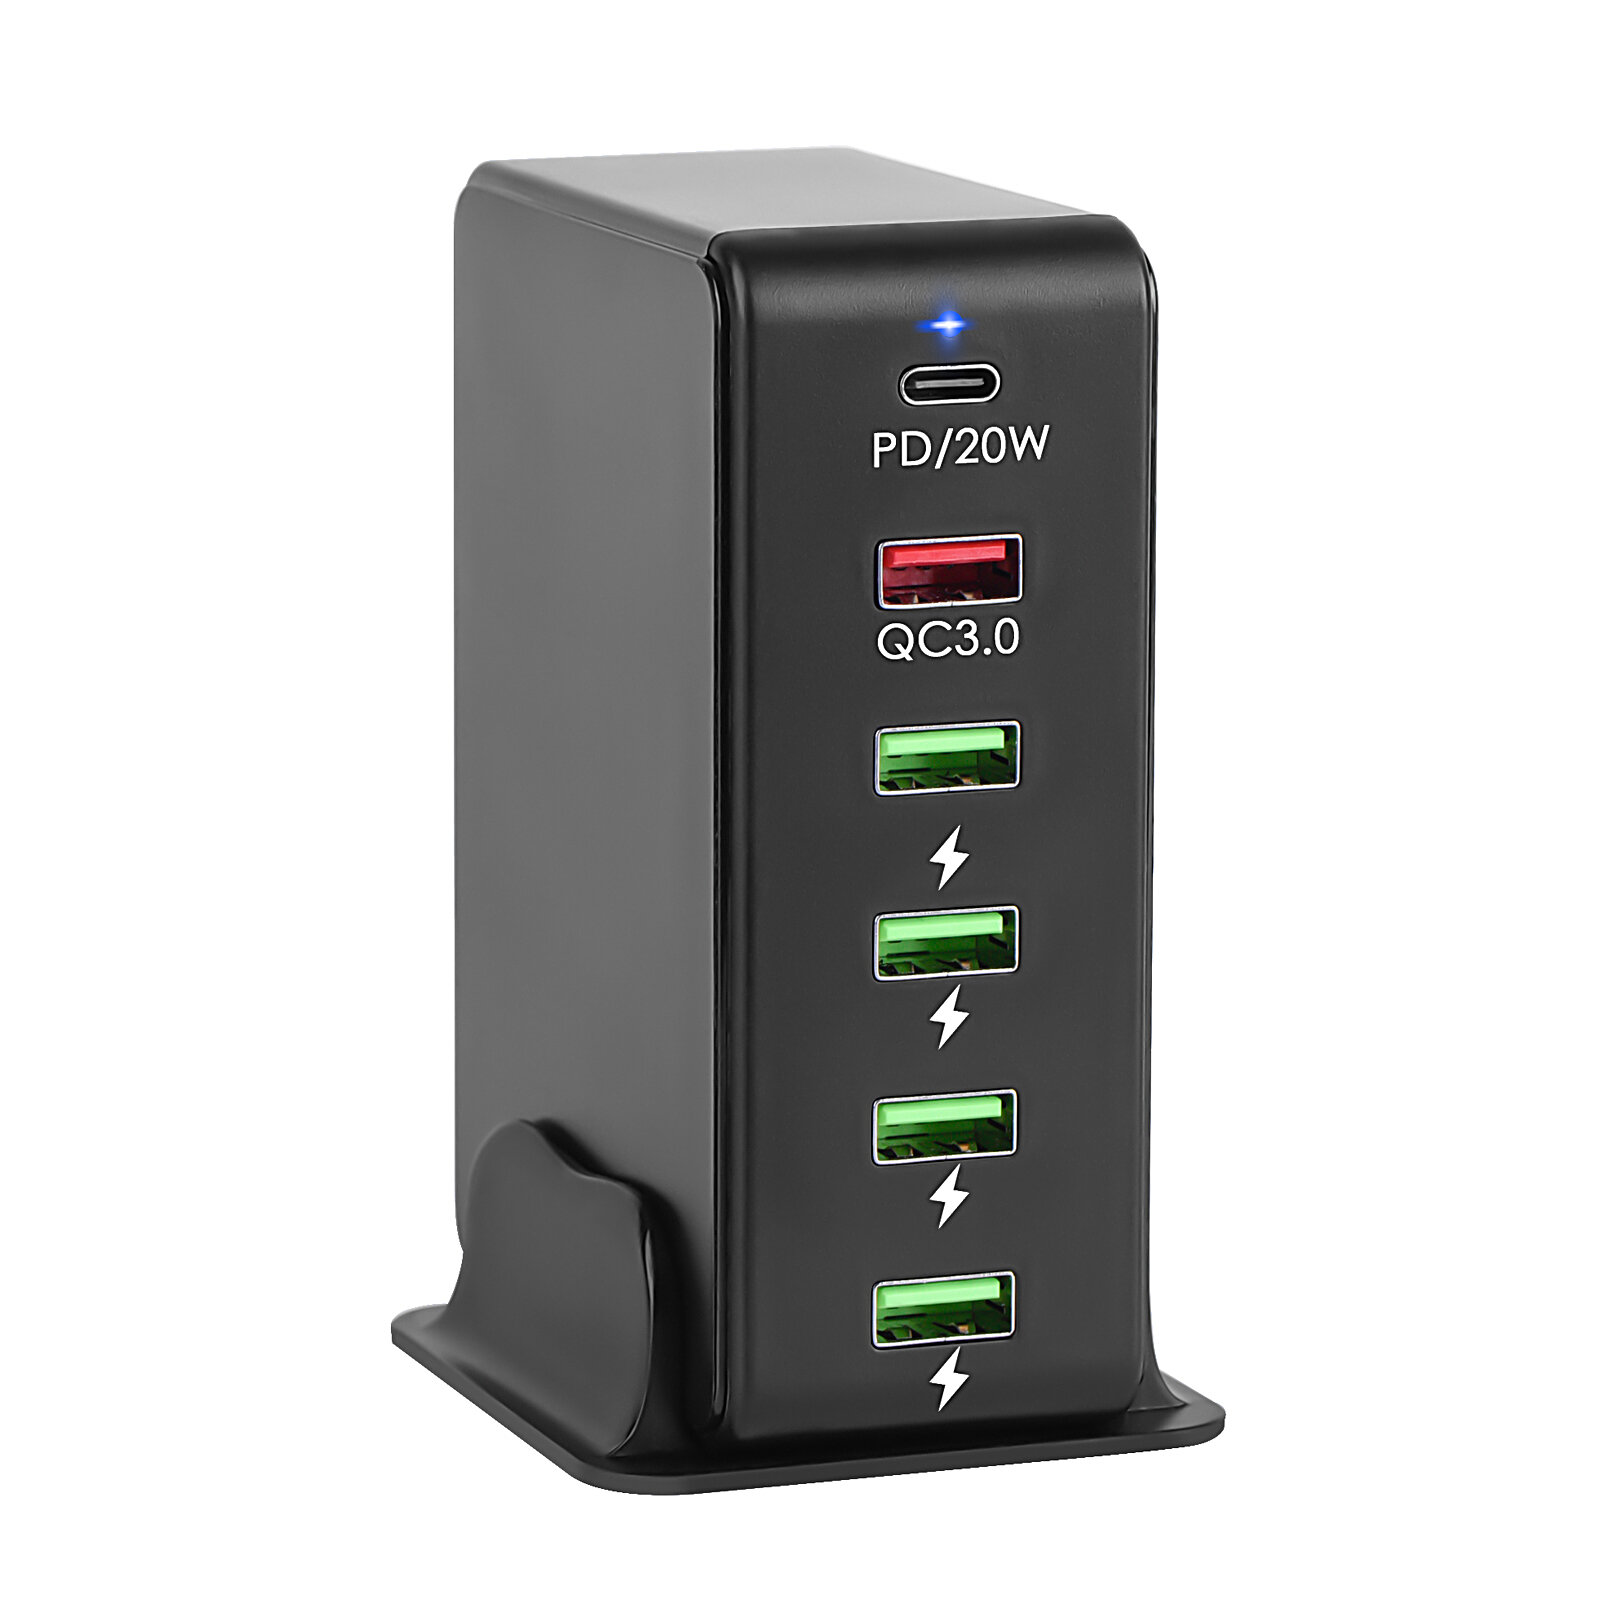 Bakeey 65W 6-Port USB PD Charger